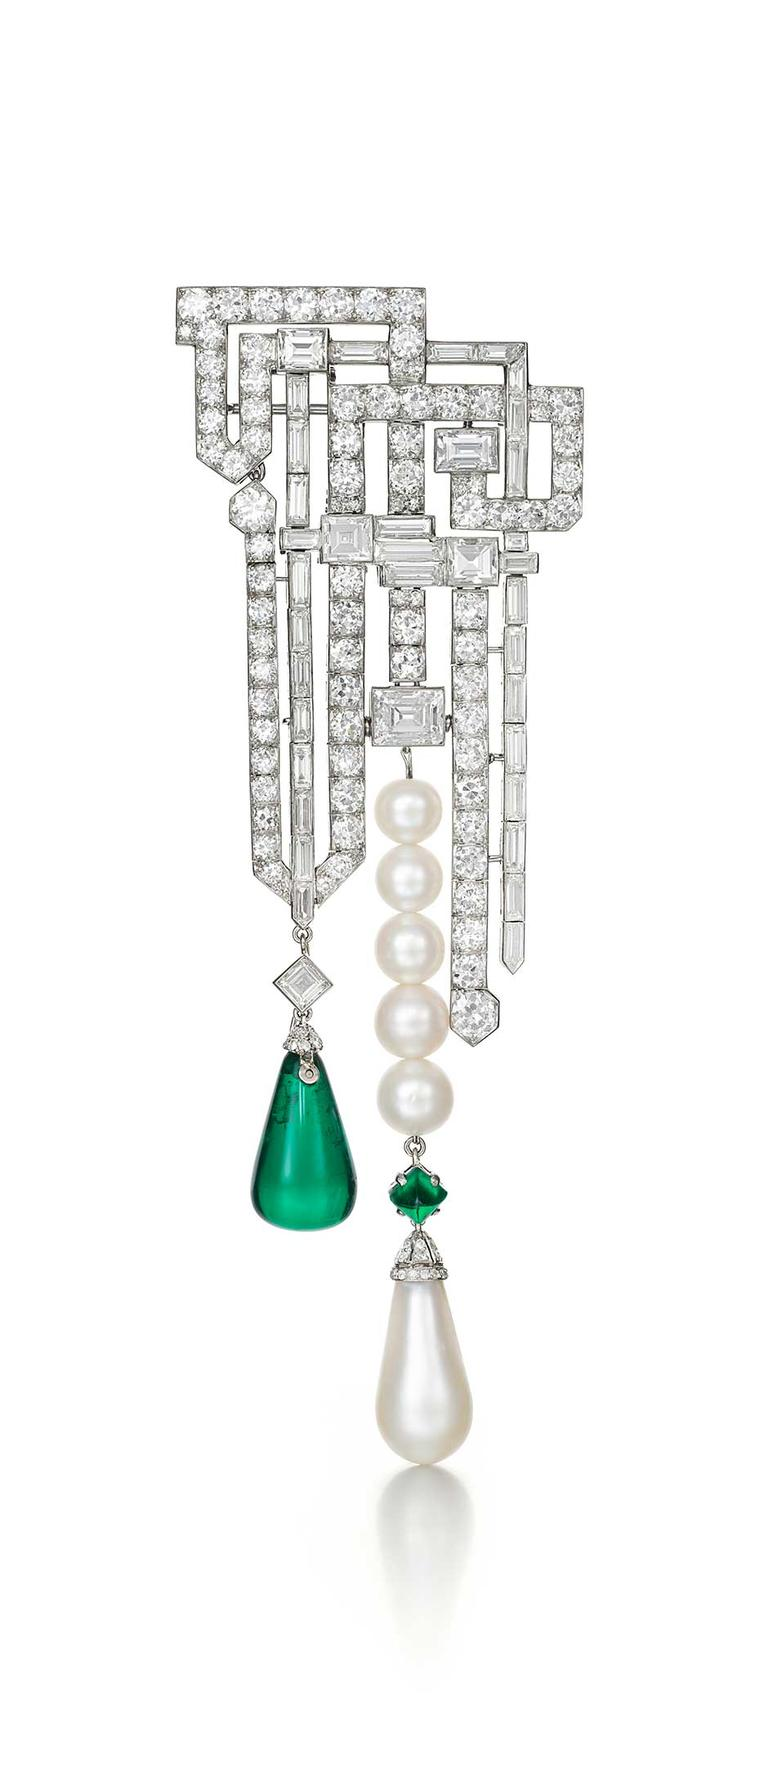 Siegelson will be bringing this Van Cleef & Arpels diamond, emerald and pearl brooch dating from 1926